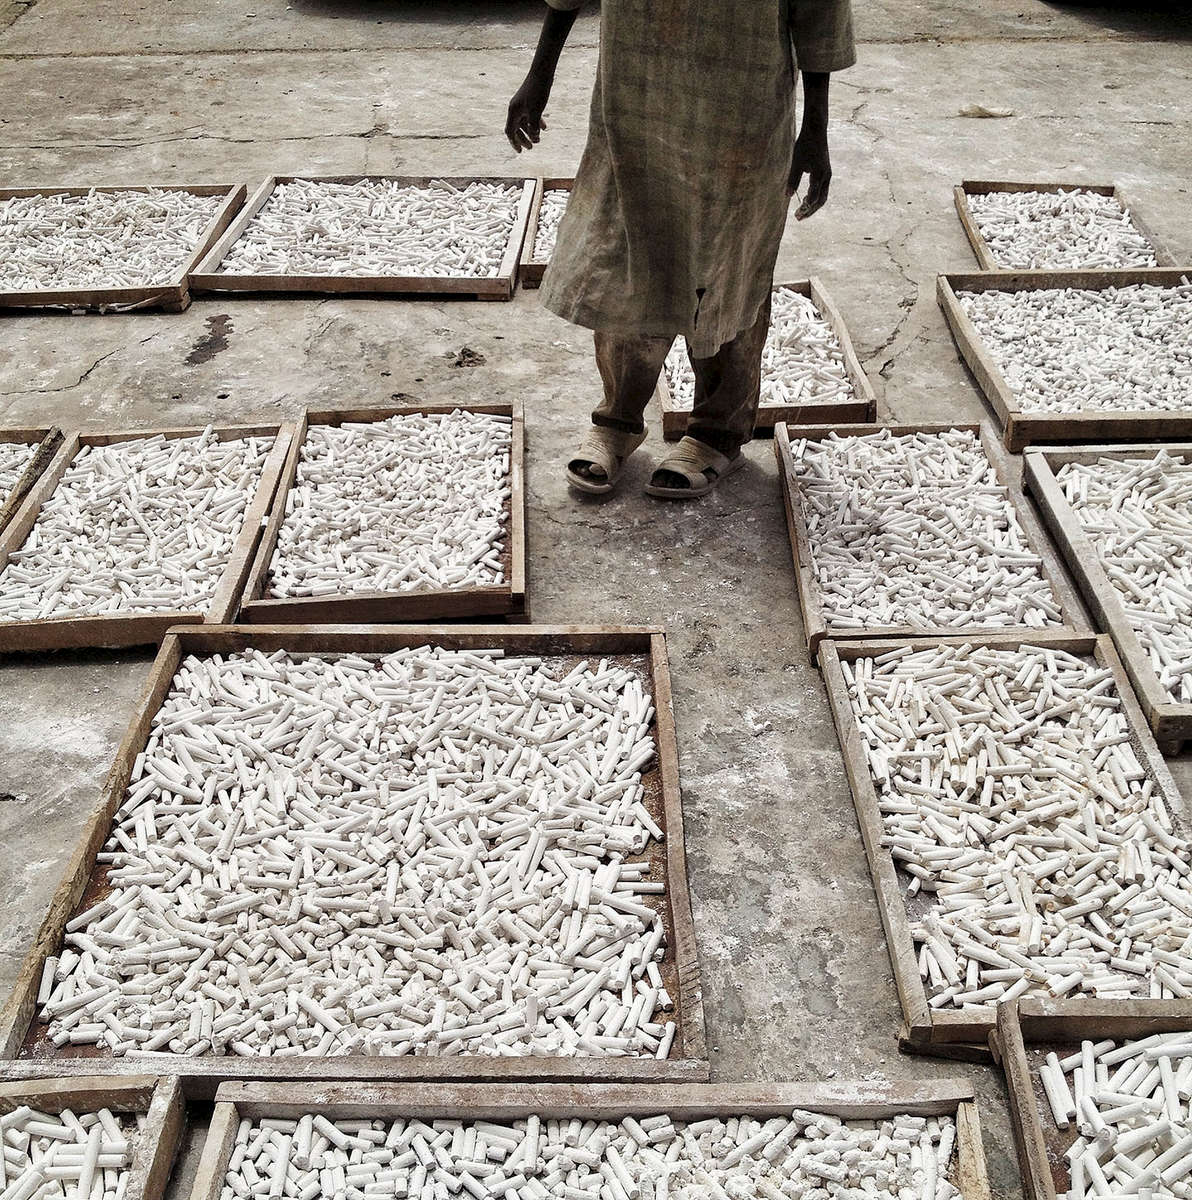 Making chalk. Kano, Nigeria. October 2013.